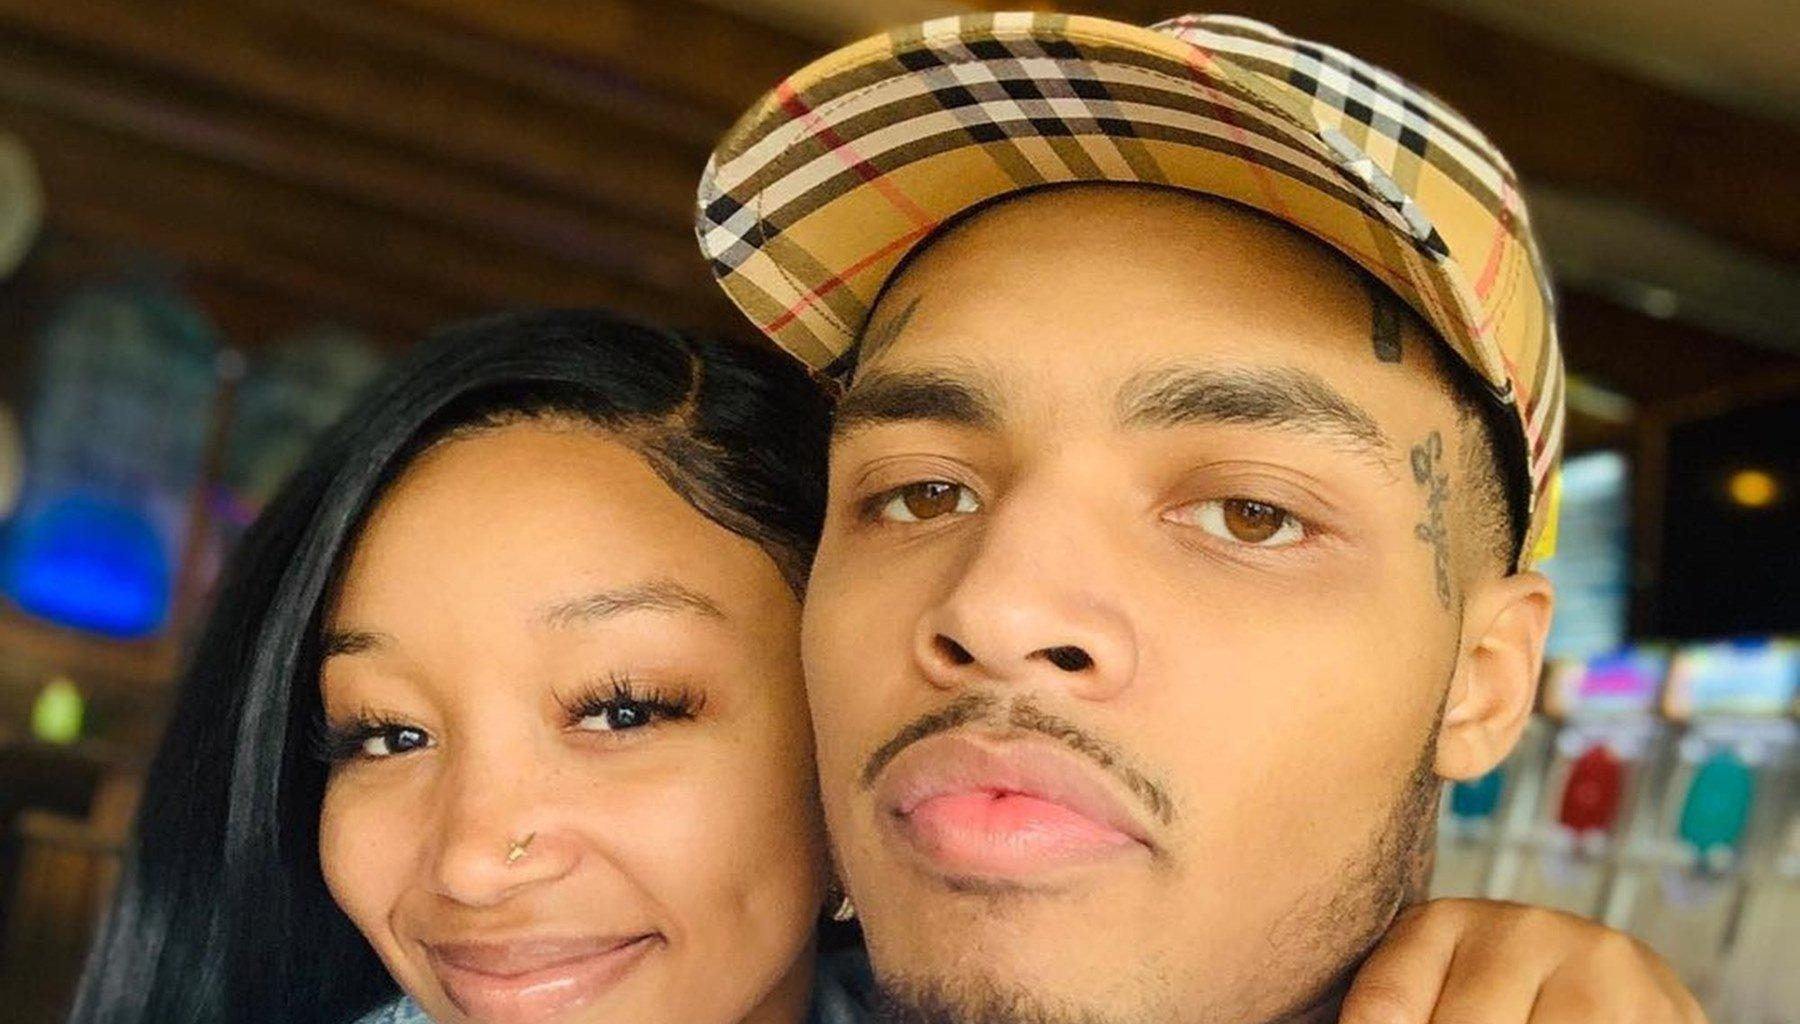 Tiny Harris' Daughter, Zonnique Pullins And Her BF, Bandhunta Izzy Welcome Their Baby Girl! See The Emotional Videos